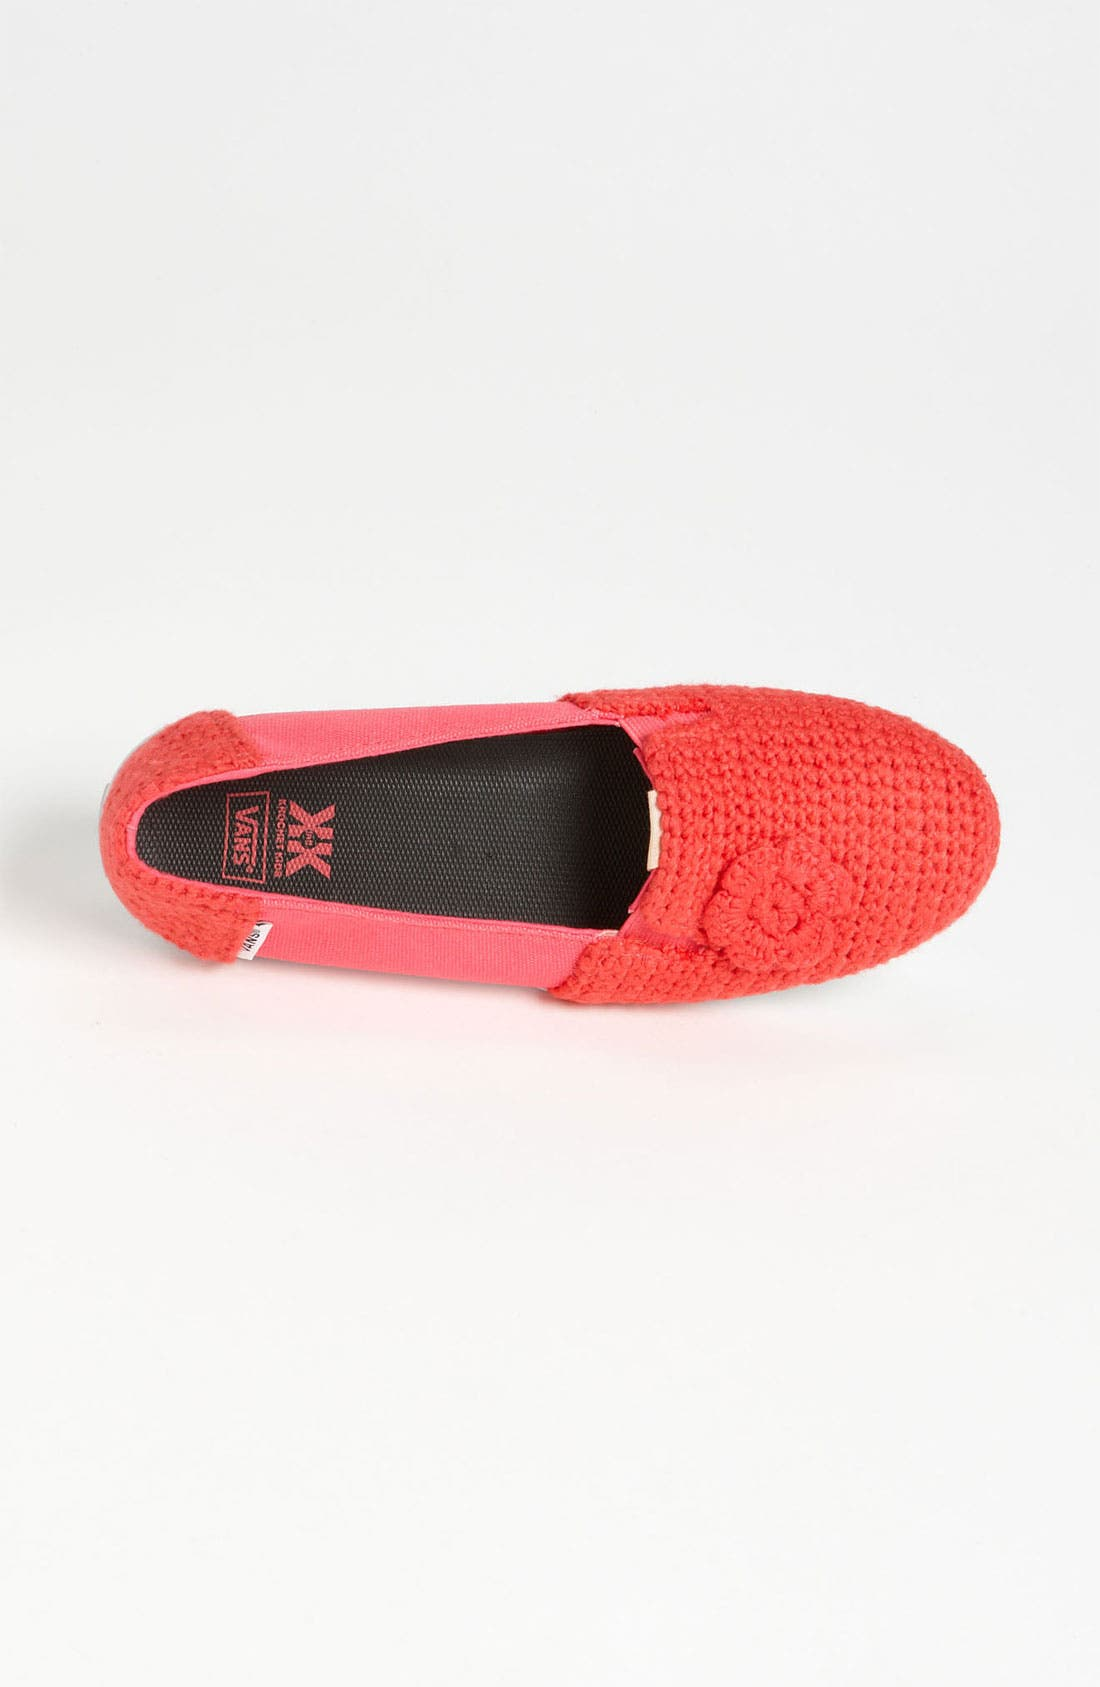 Alternate Image 3  - Vans + Krochet Kids 'Bixie' Crochet Slip-On